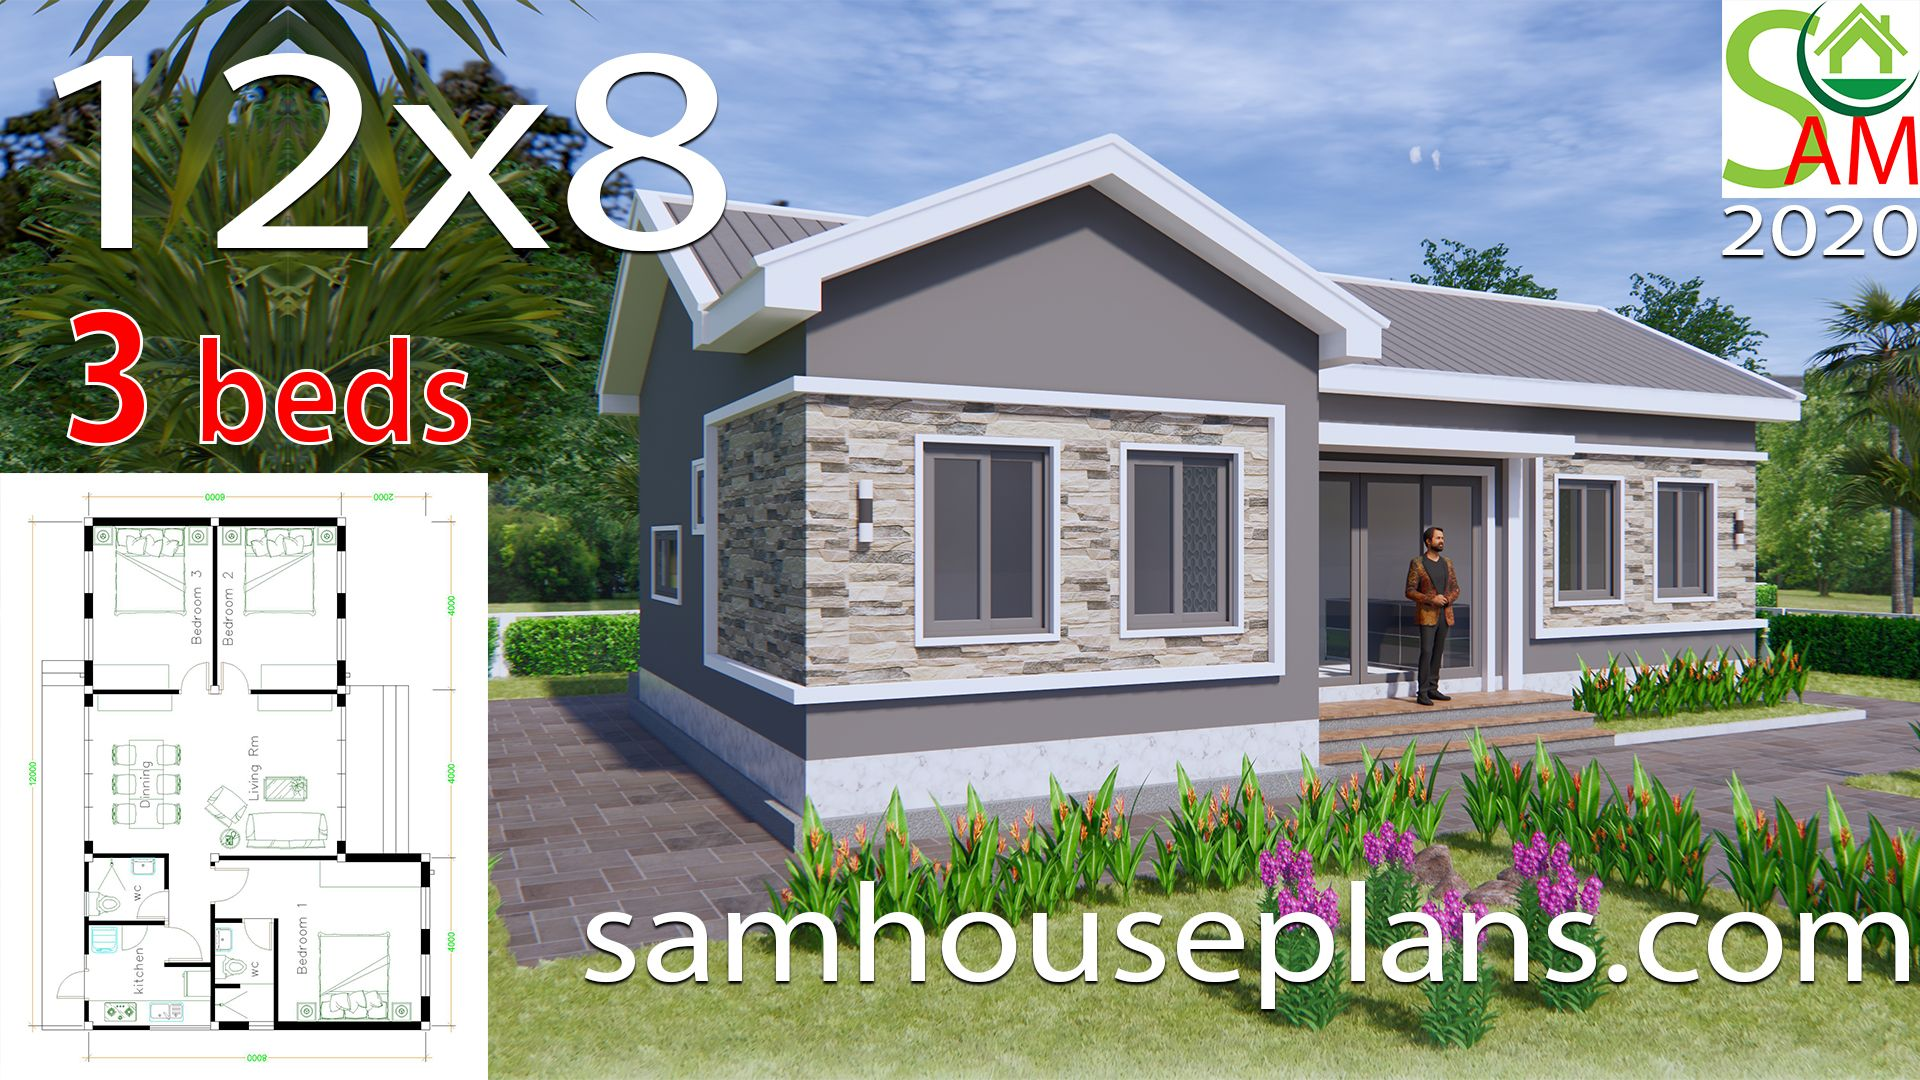 House Plans 12x8 With 3 Bedrooms Gable Roof Sam House Plans House Construction Plan Beautiful House Plans House Plan Gallery